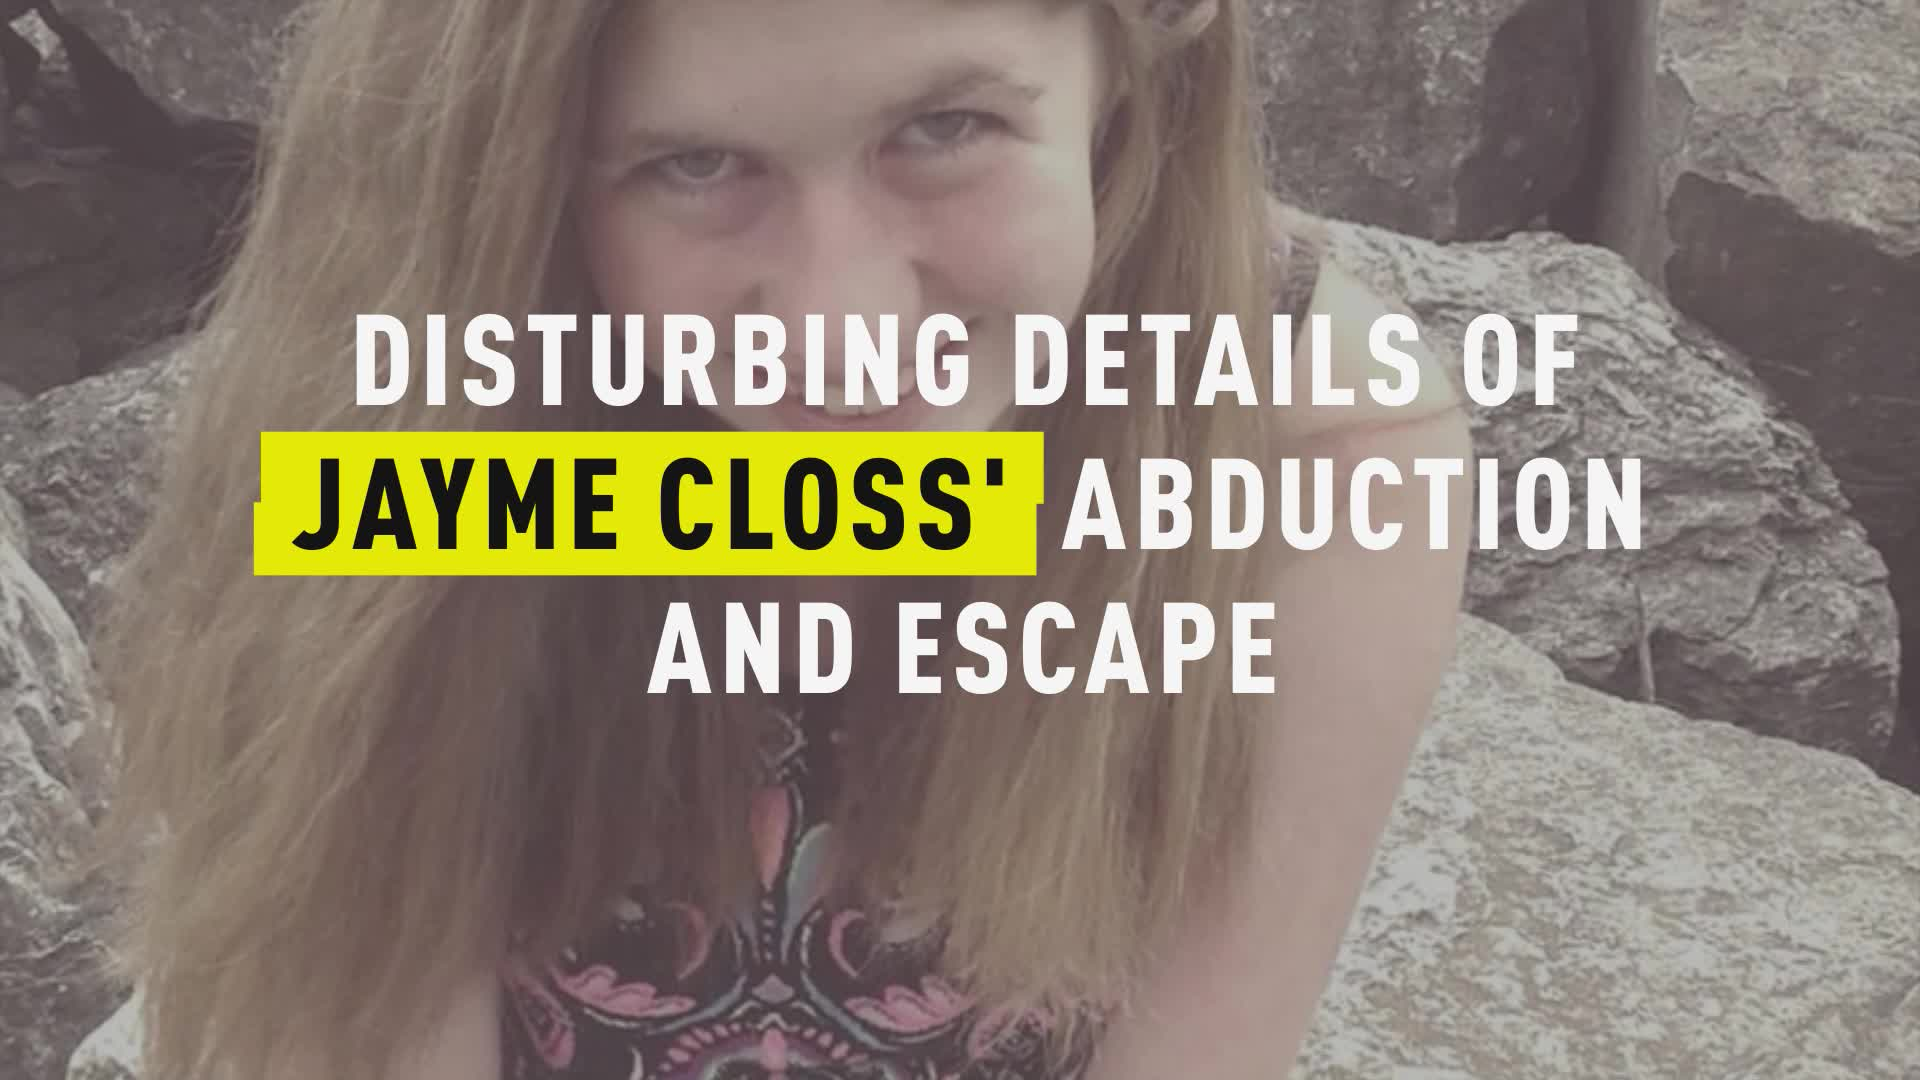 Disturbing Details of Jayme Closs' Abduction and Escape